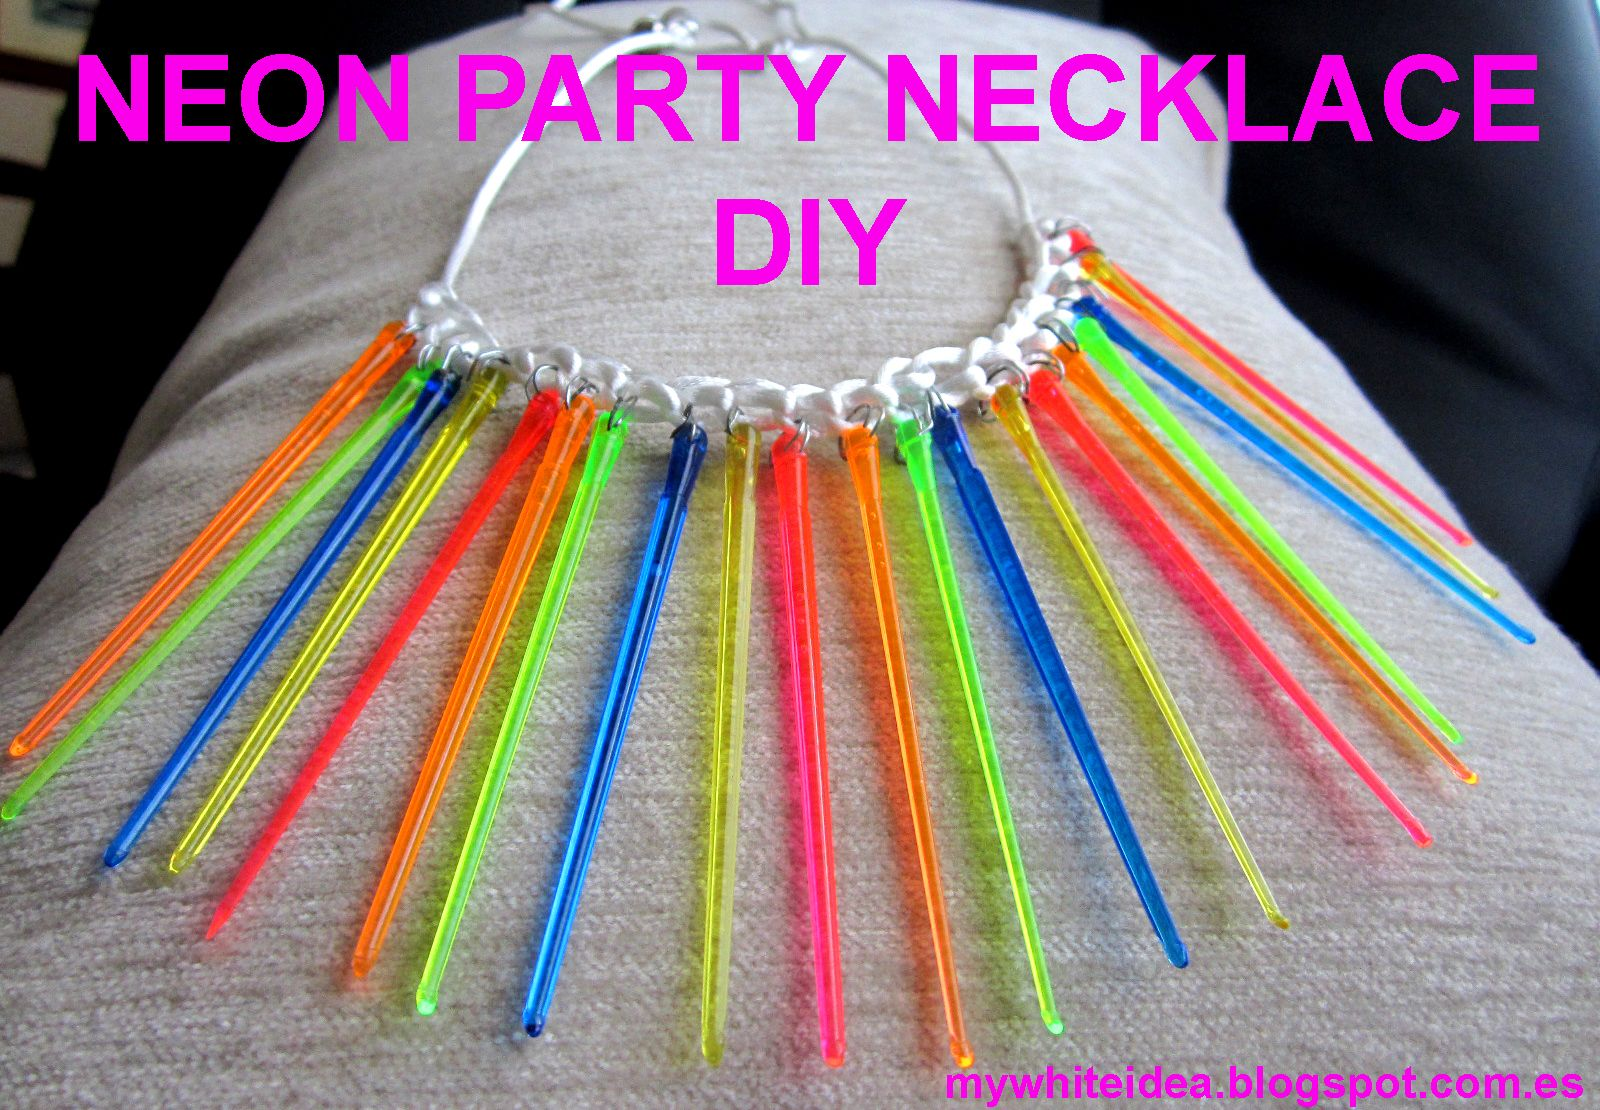 neon party ideas | NEON PARTY NECKLACE DIY